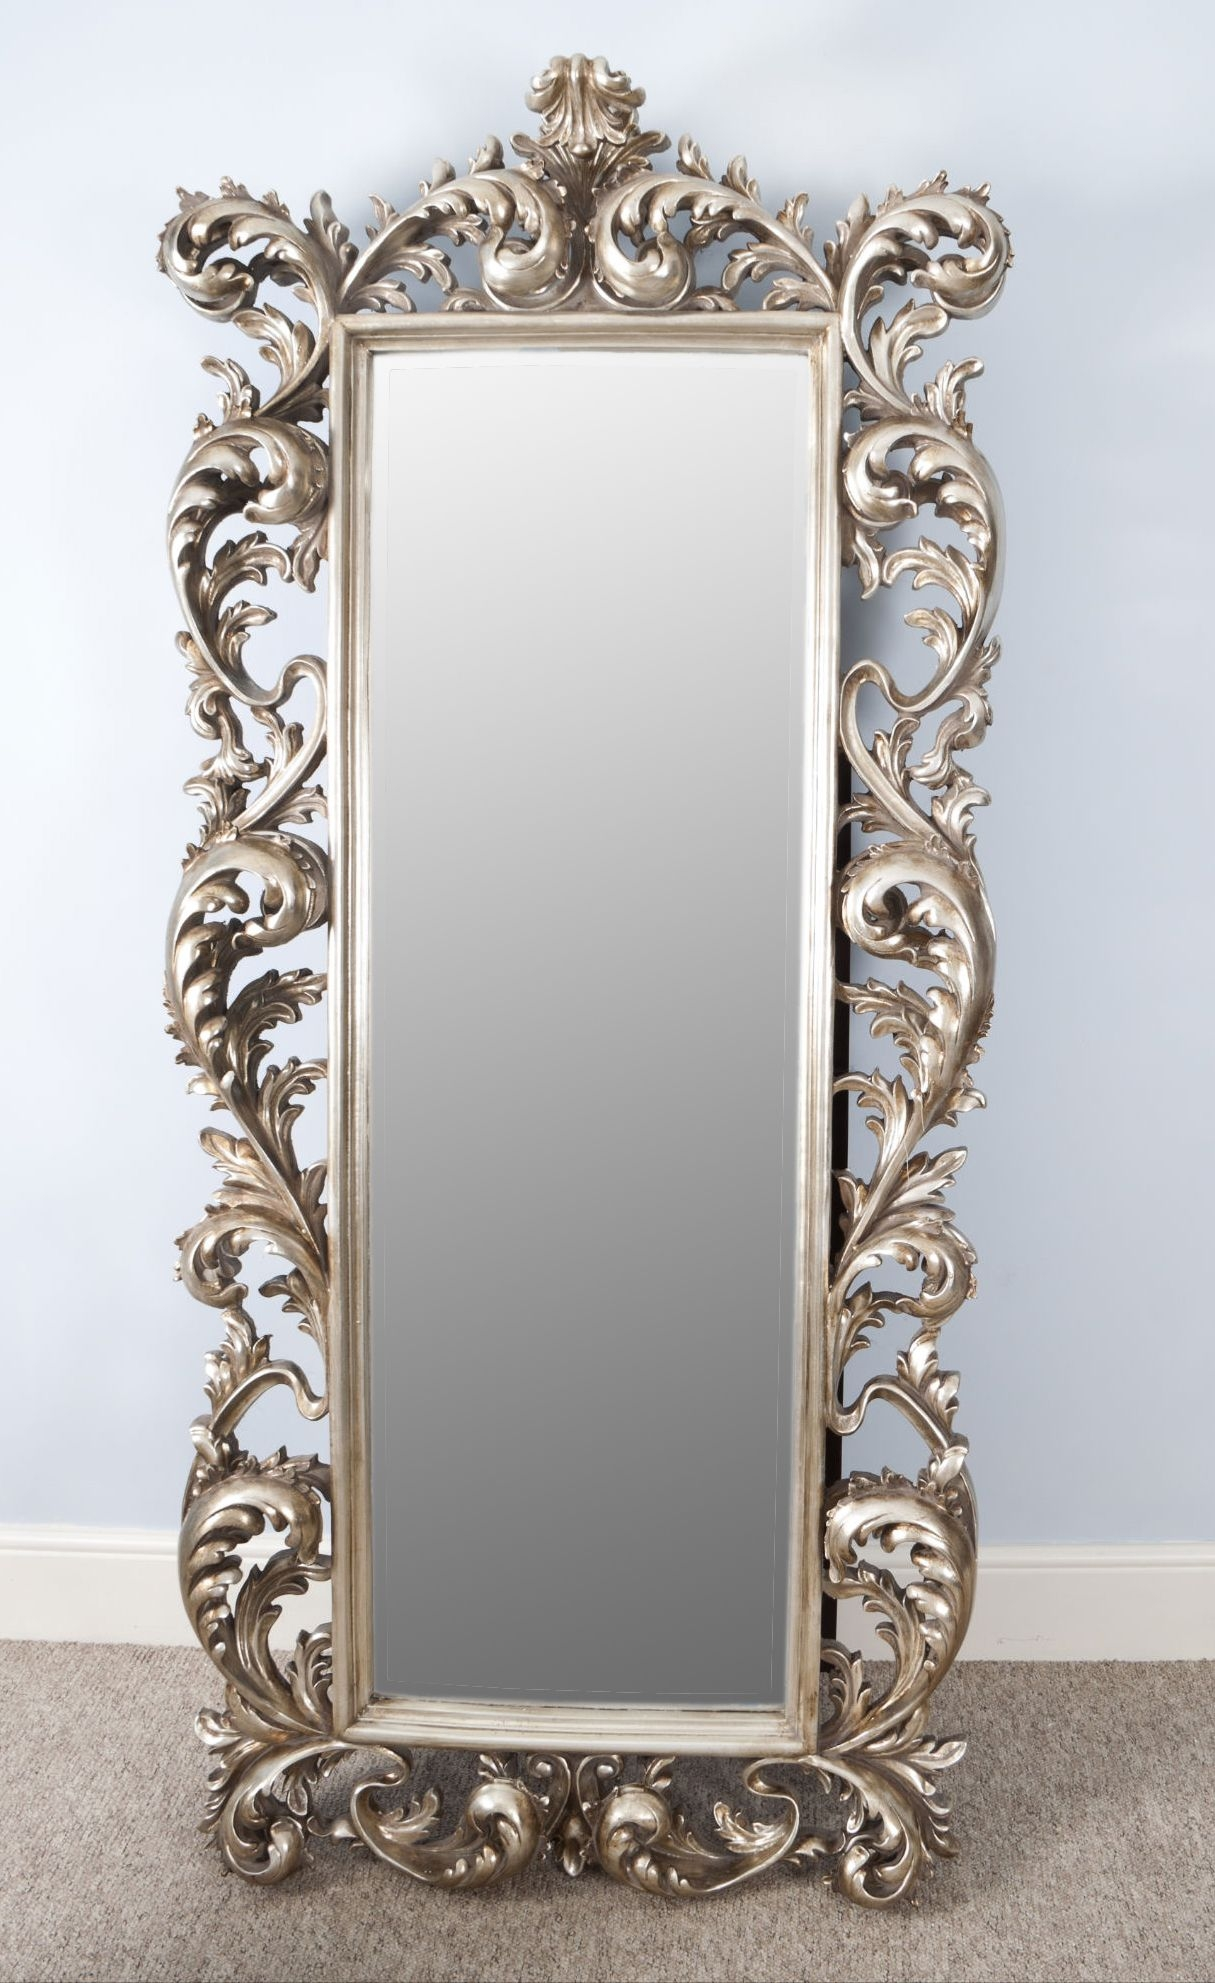 Classic Impression On Antique Wall Mirrors Vwho Within Reproduction Mirrors (View 12 of 15)